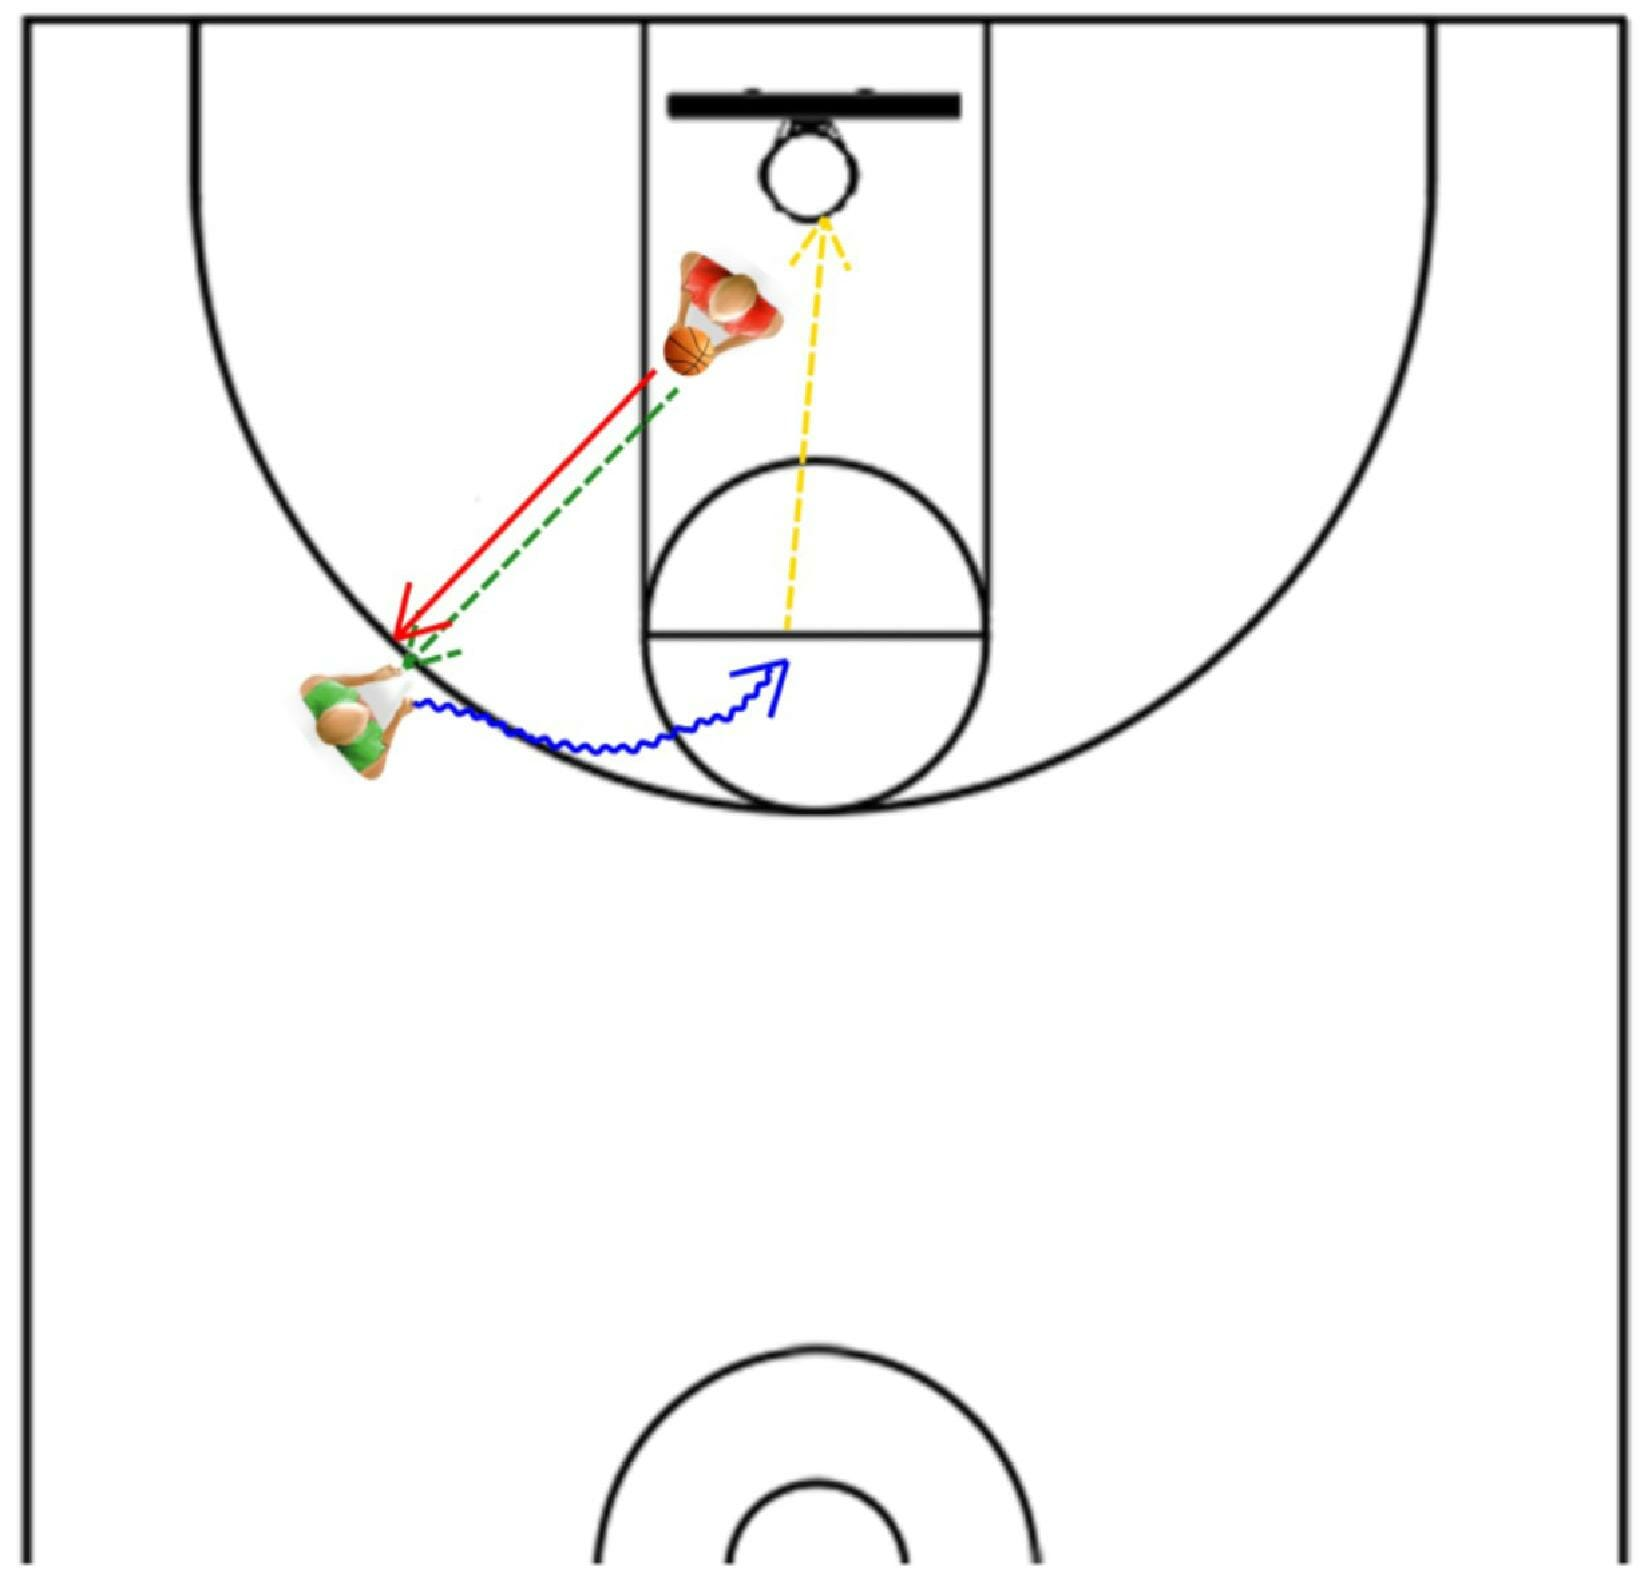 3 Point Shooting Drill Workout to Maximize Performance!